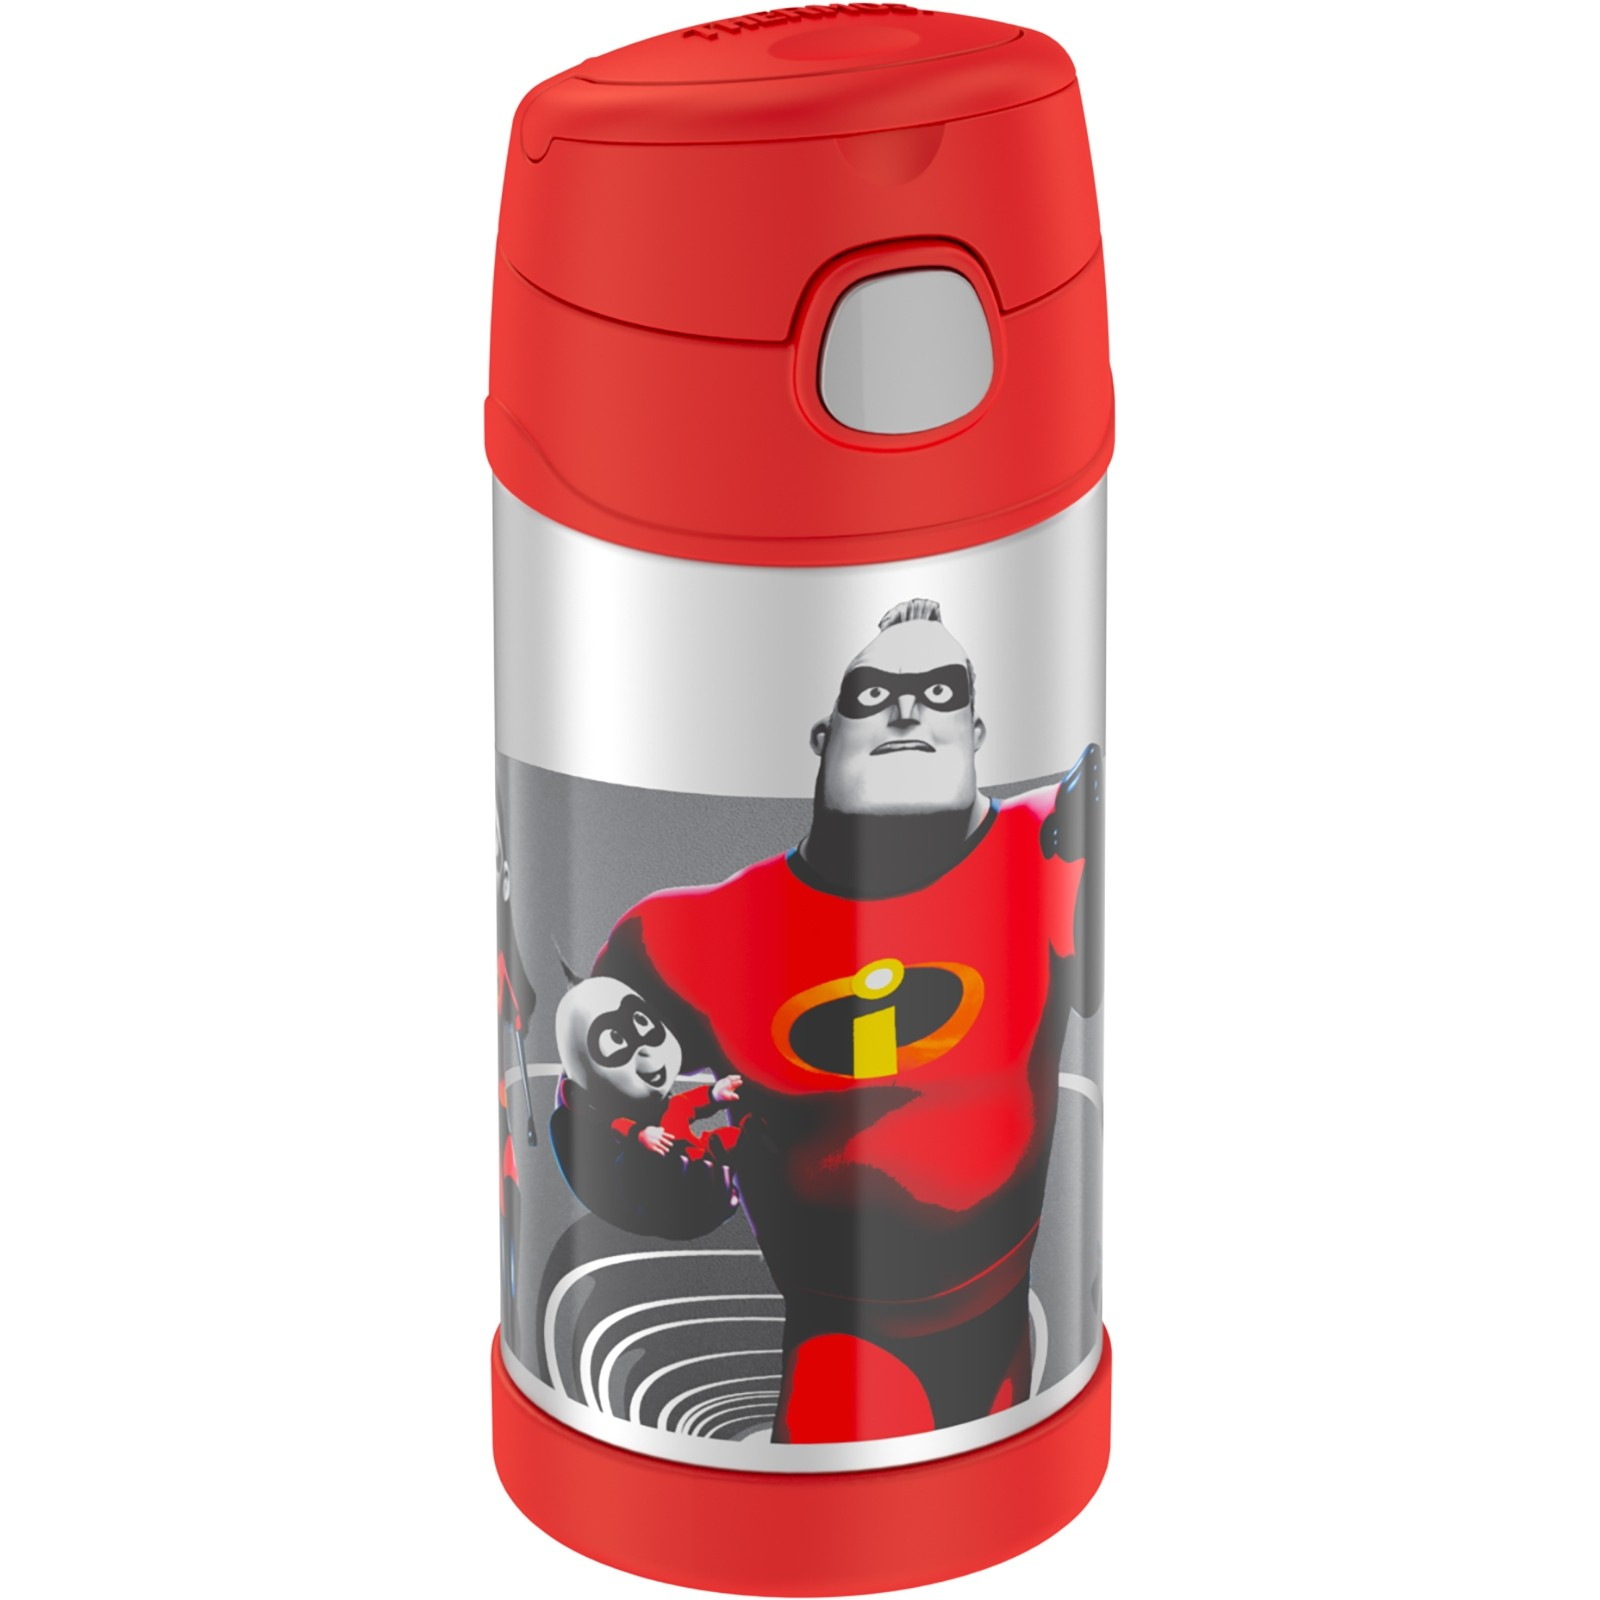 FUNTAINER® STAINLESS STEEL WATER BOTTLE WITH STRAW DISNEY PIXAR'S INCREDIBLES 2